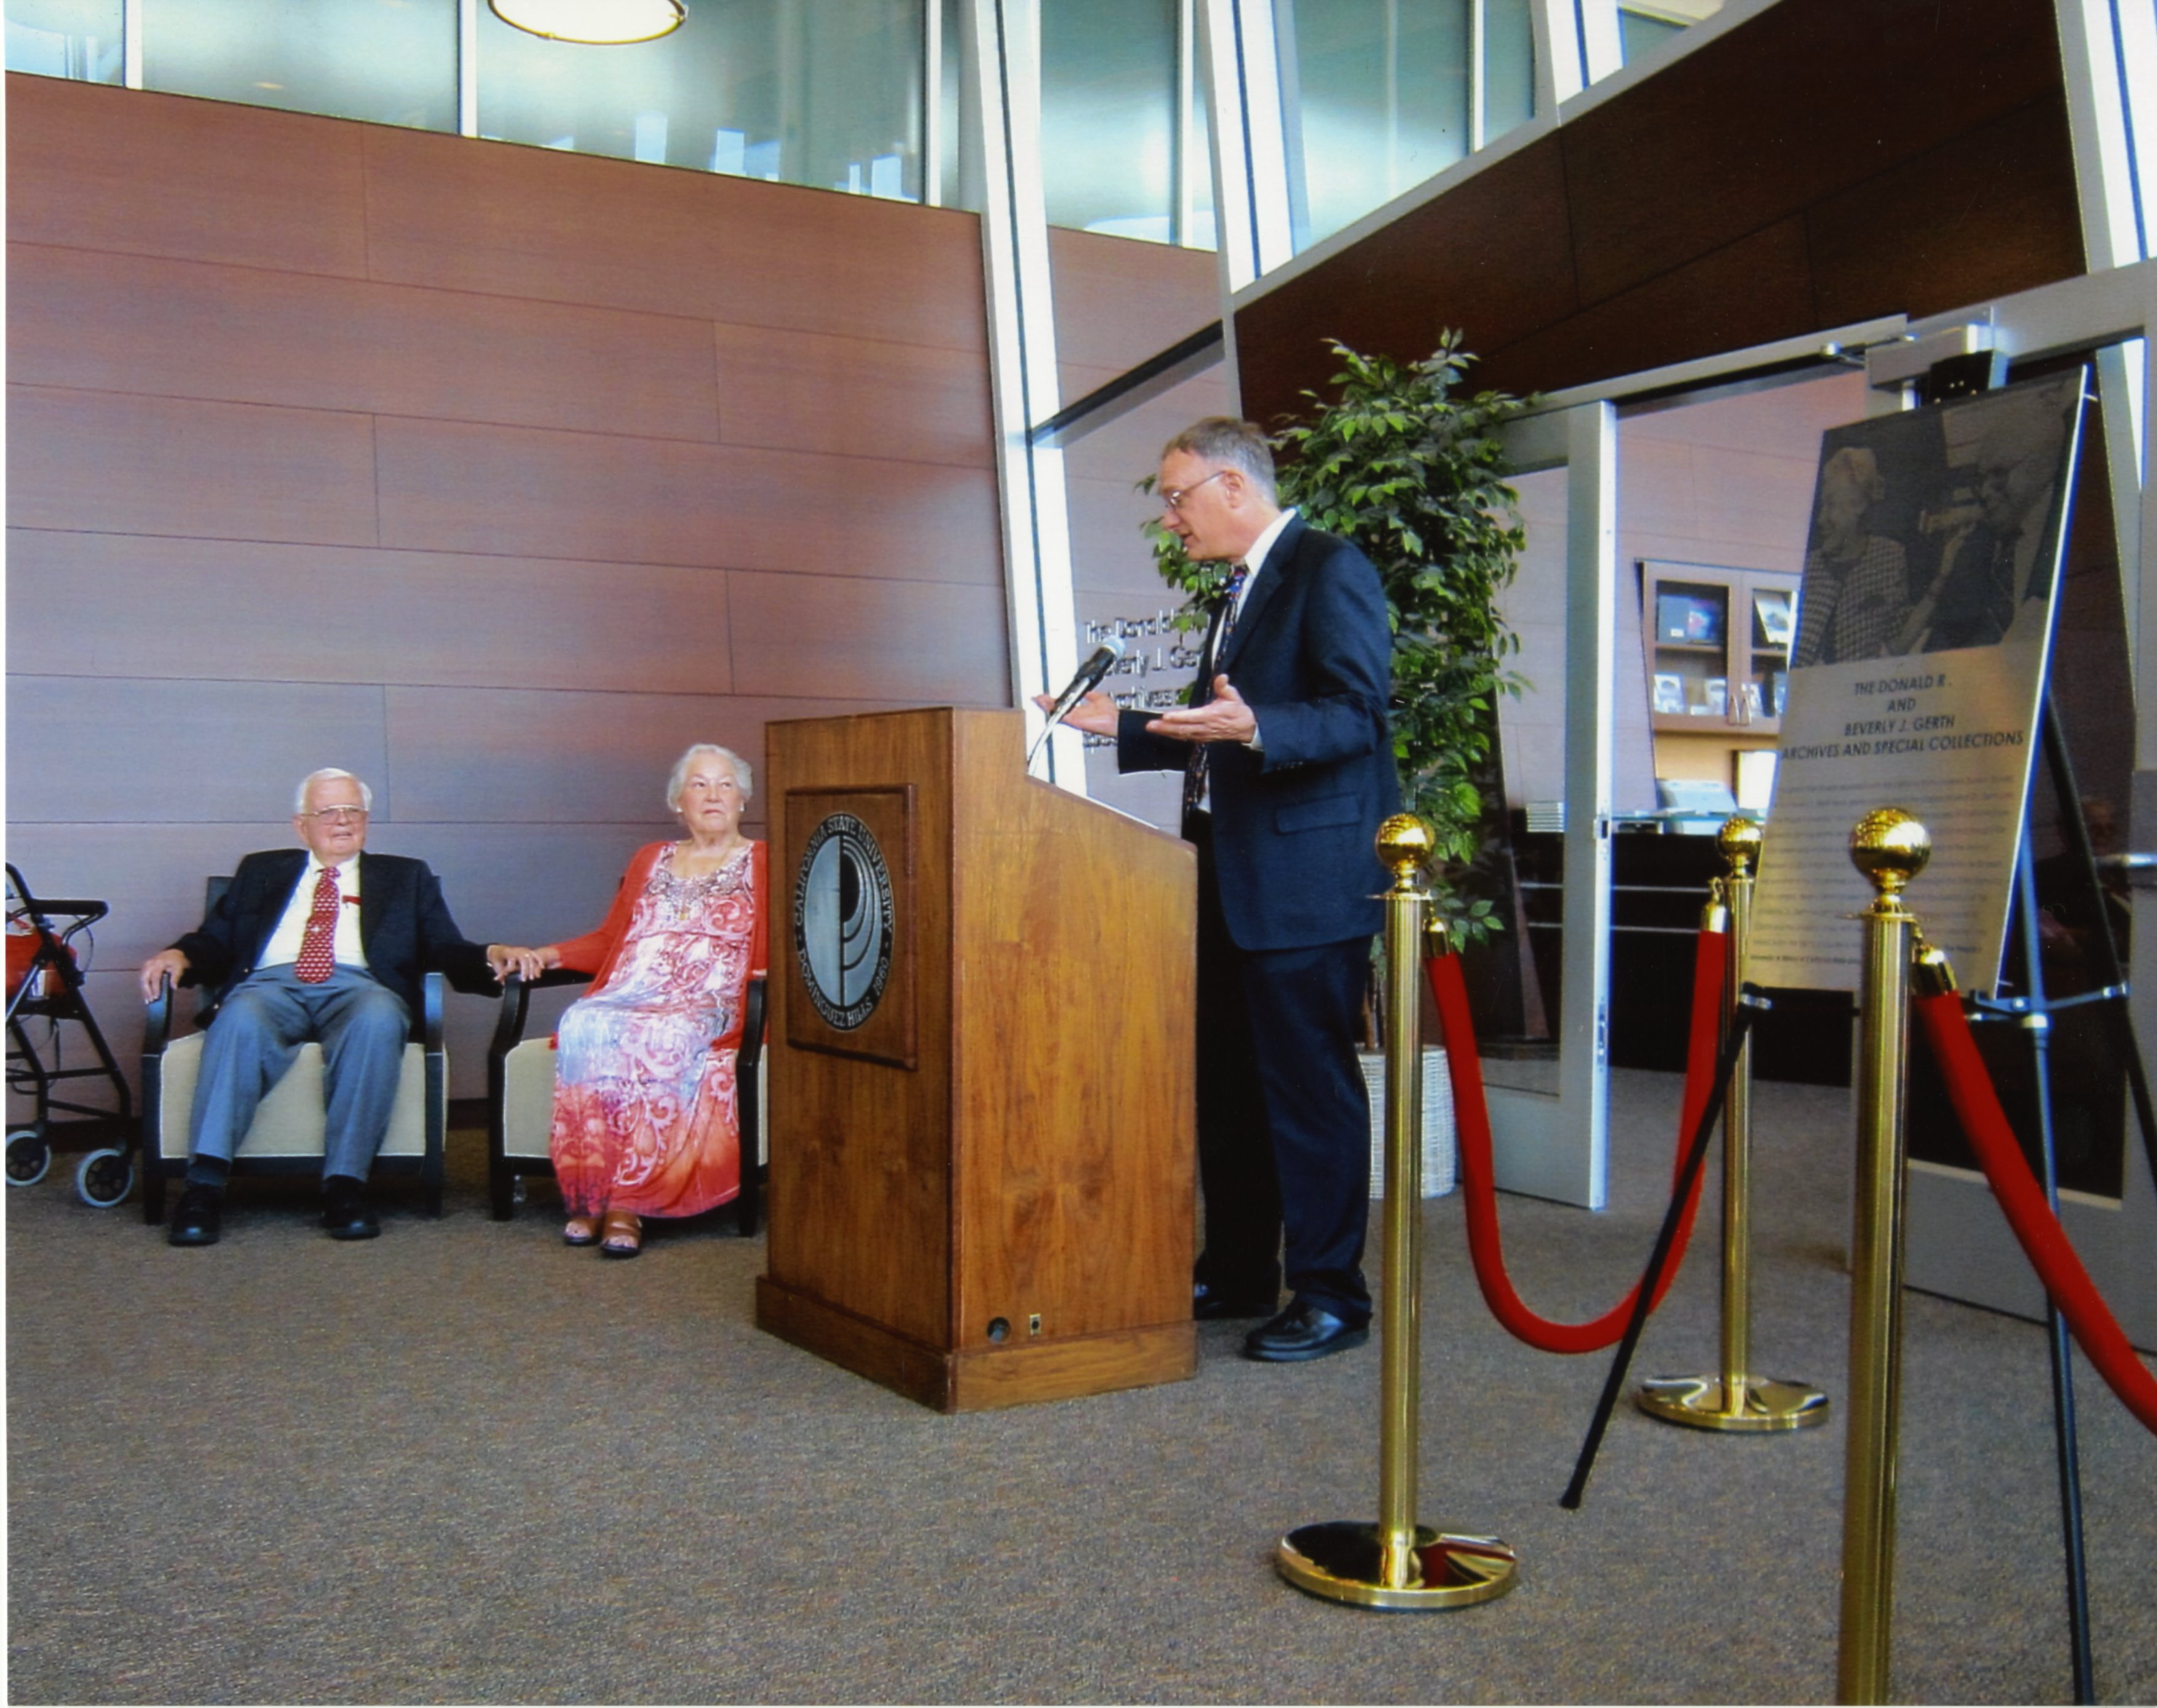 Greg Williams at podium, Donald and Beverly Gerth sitting, photograph